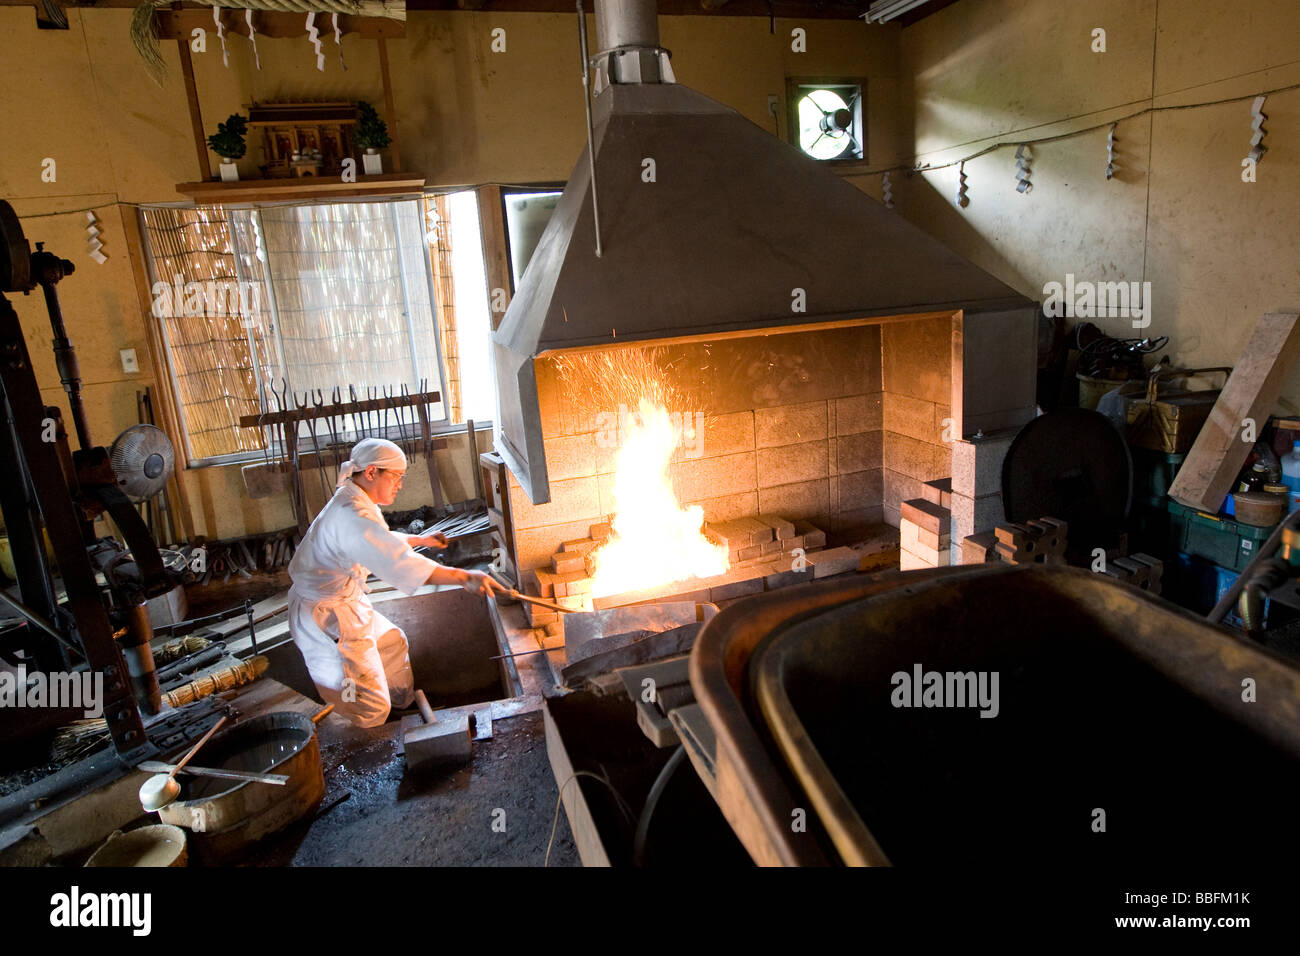 Sadanori Tanaka a swordsmith for 18 years works on a sword in his forge in Komuro Chiba ken Japan - Stock Image